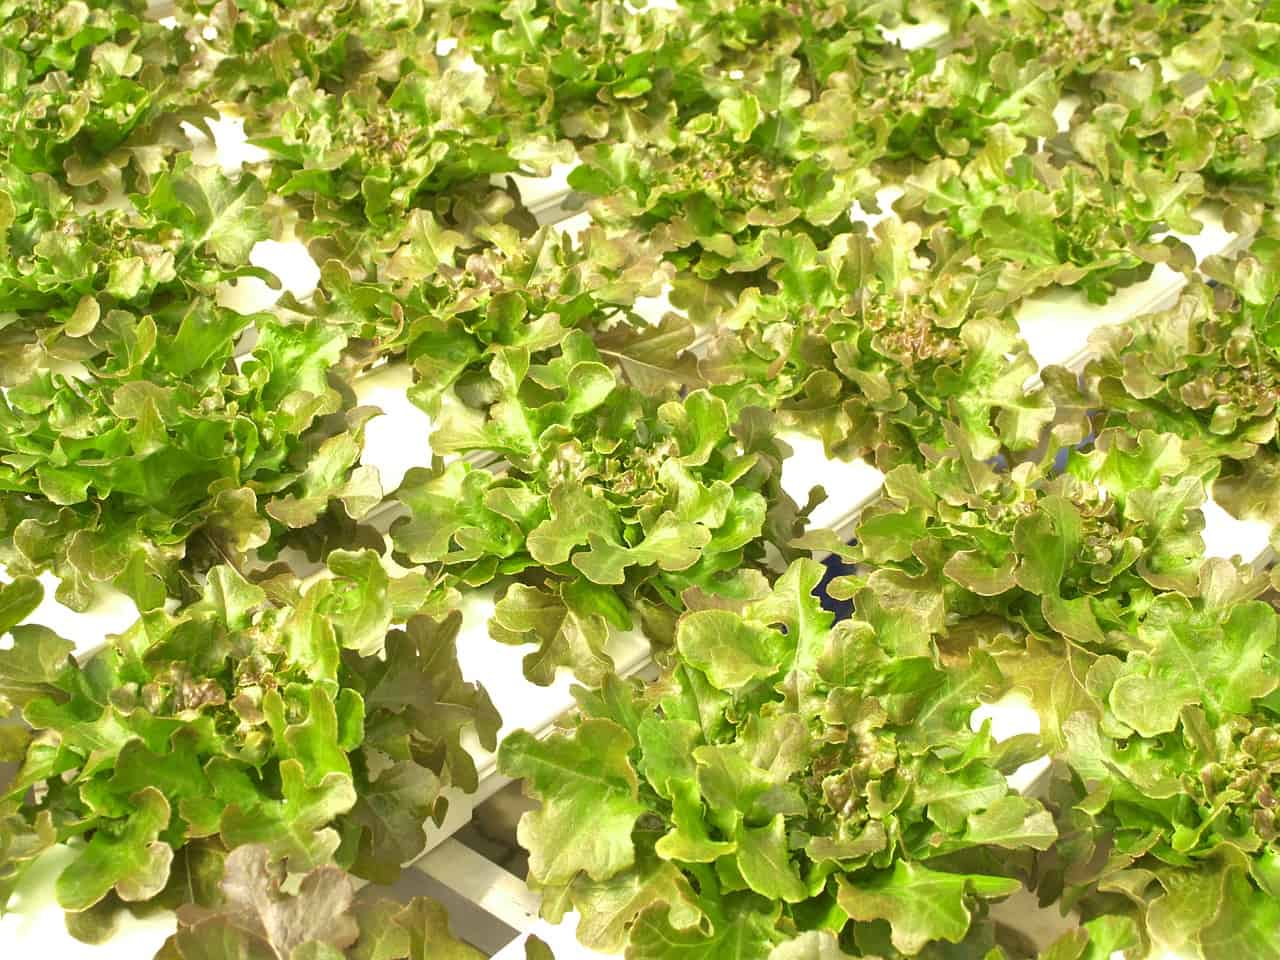 hydroponic system being used on green leafy plants